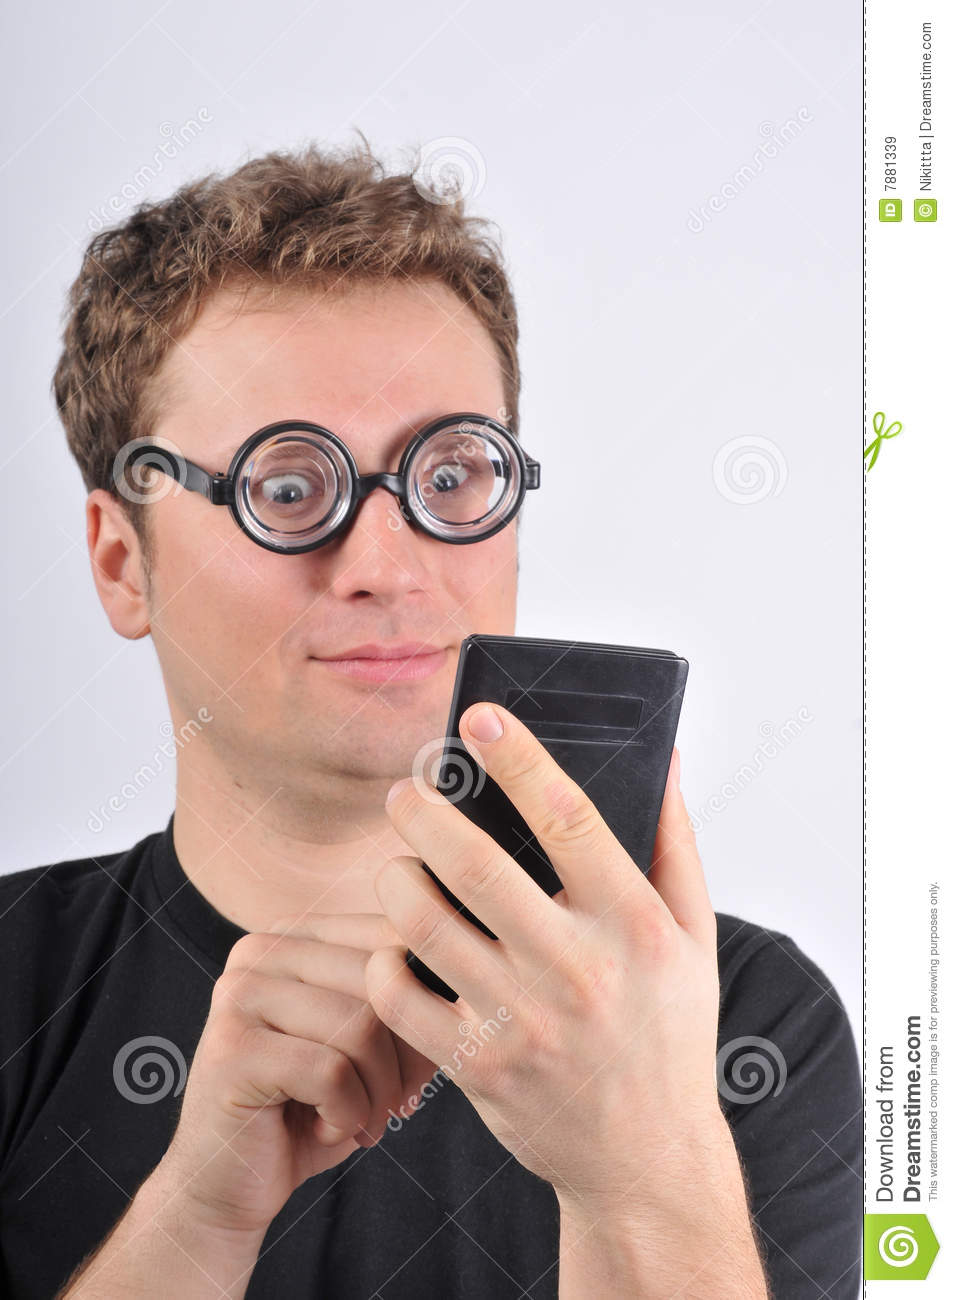 Young Weird Man Holding Calculator Royalty Free Stock Images Image 7881339